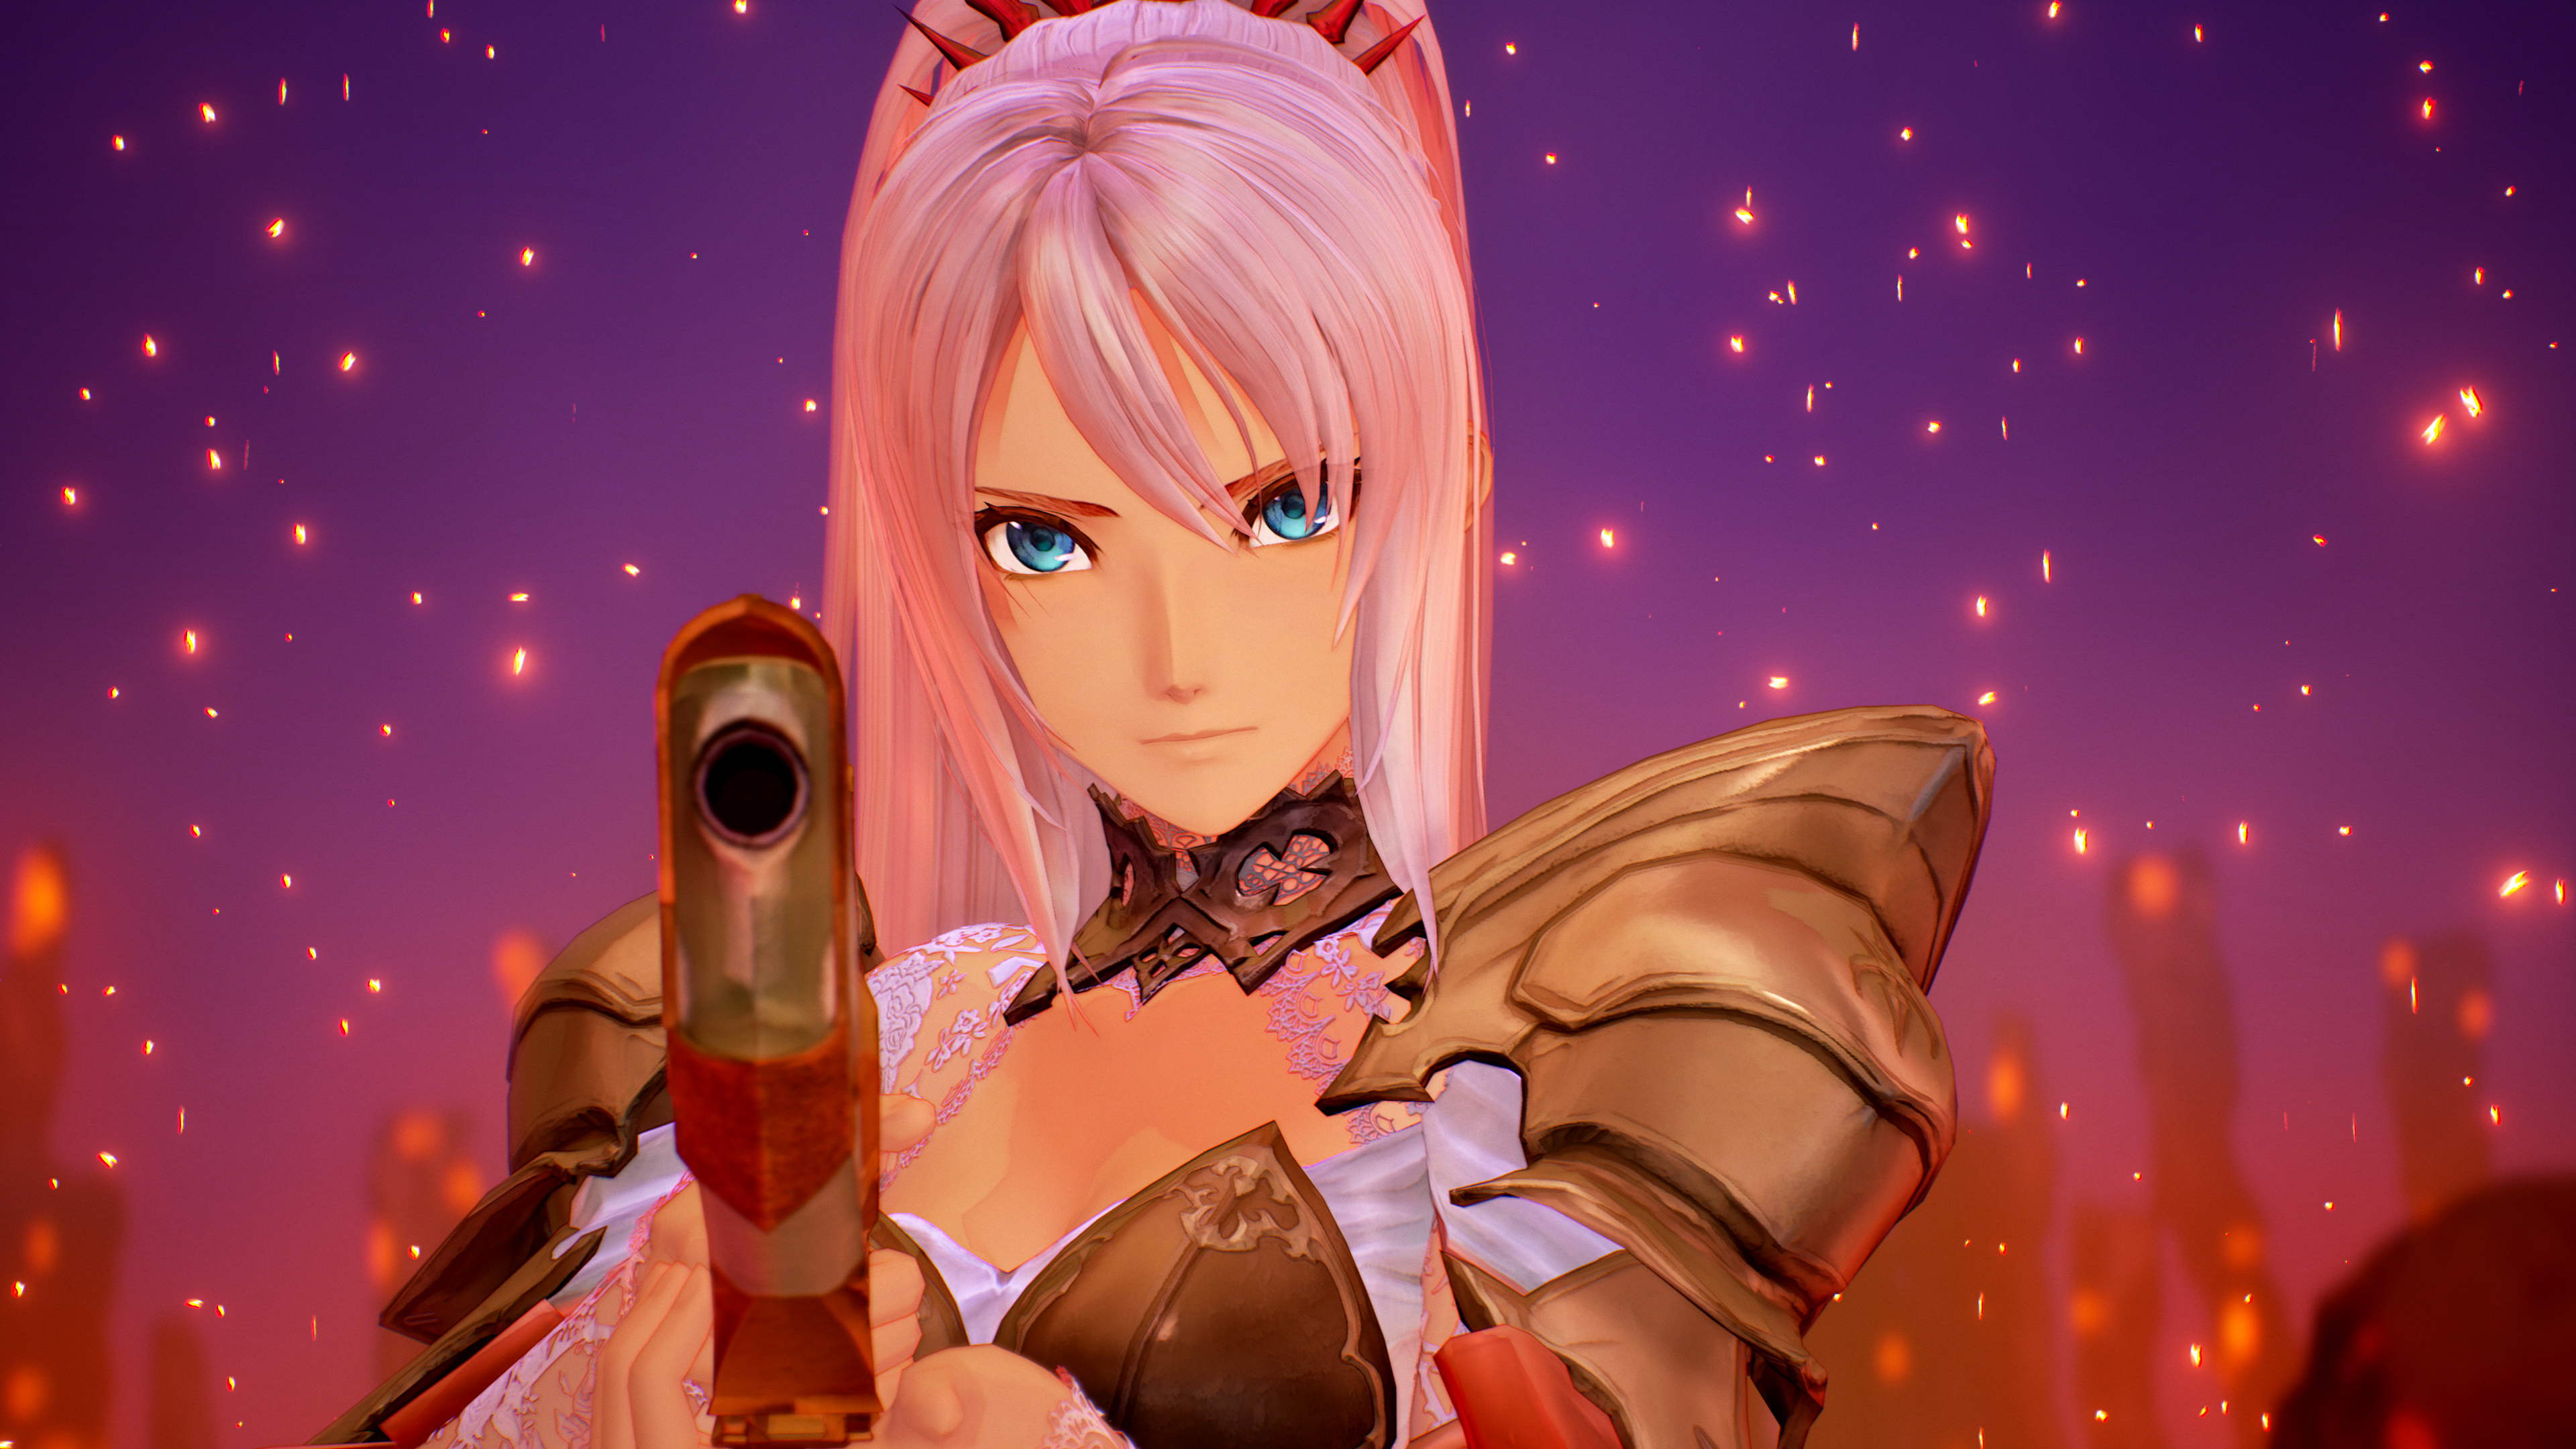 Tales of Arise protagonist and heroine are introduced as Alphen and Shionne   RPG Site